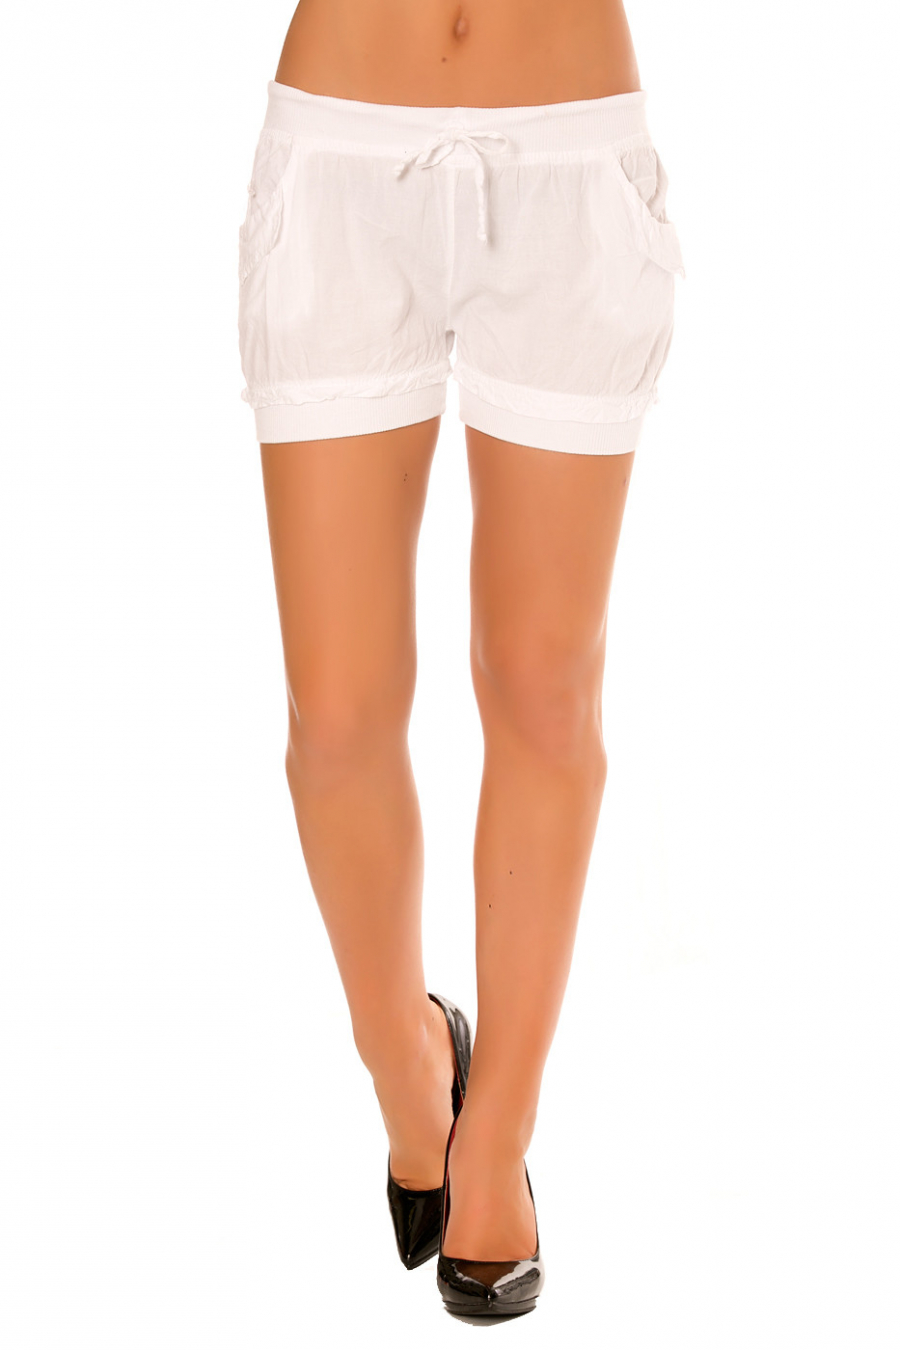 White mini shorts with elastic on the leg and waistband. Pocket on the sides. M801